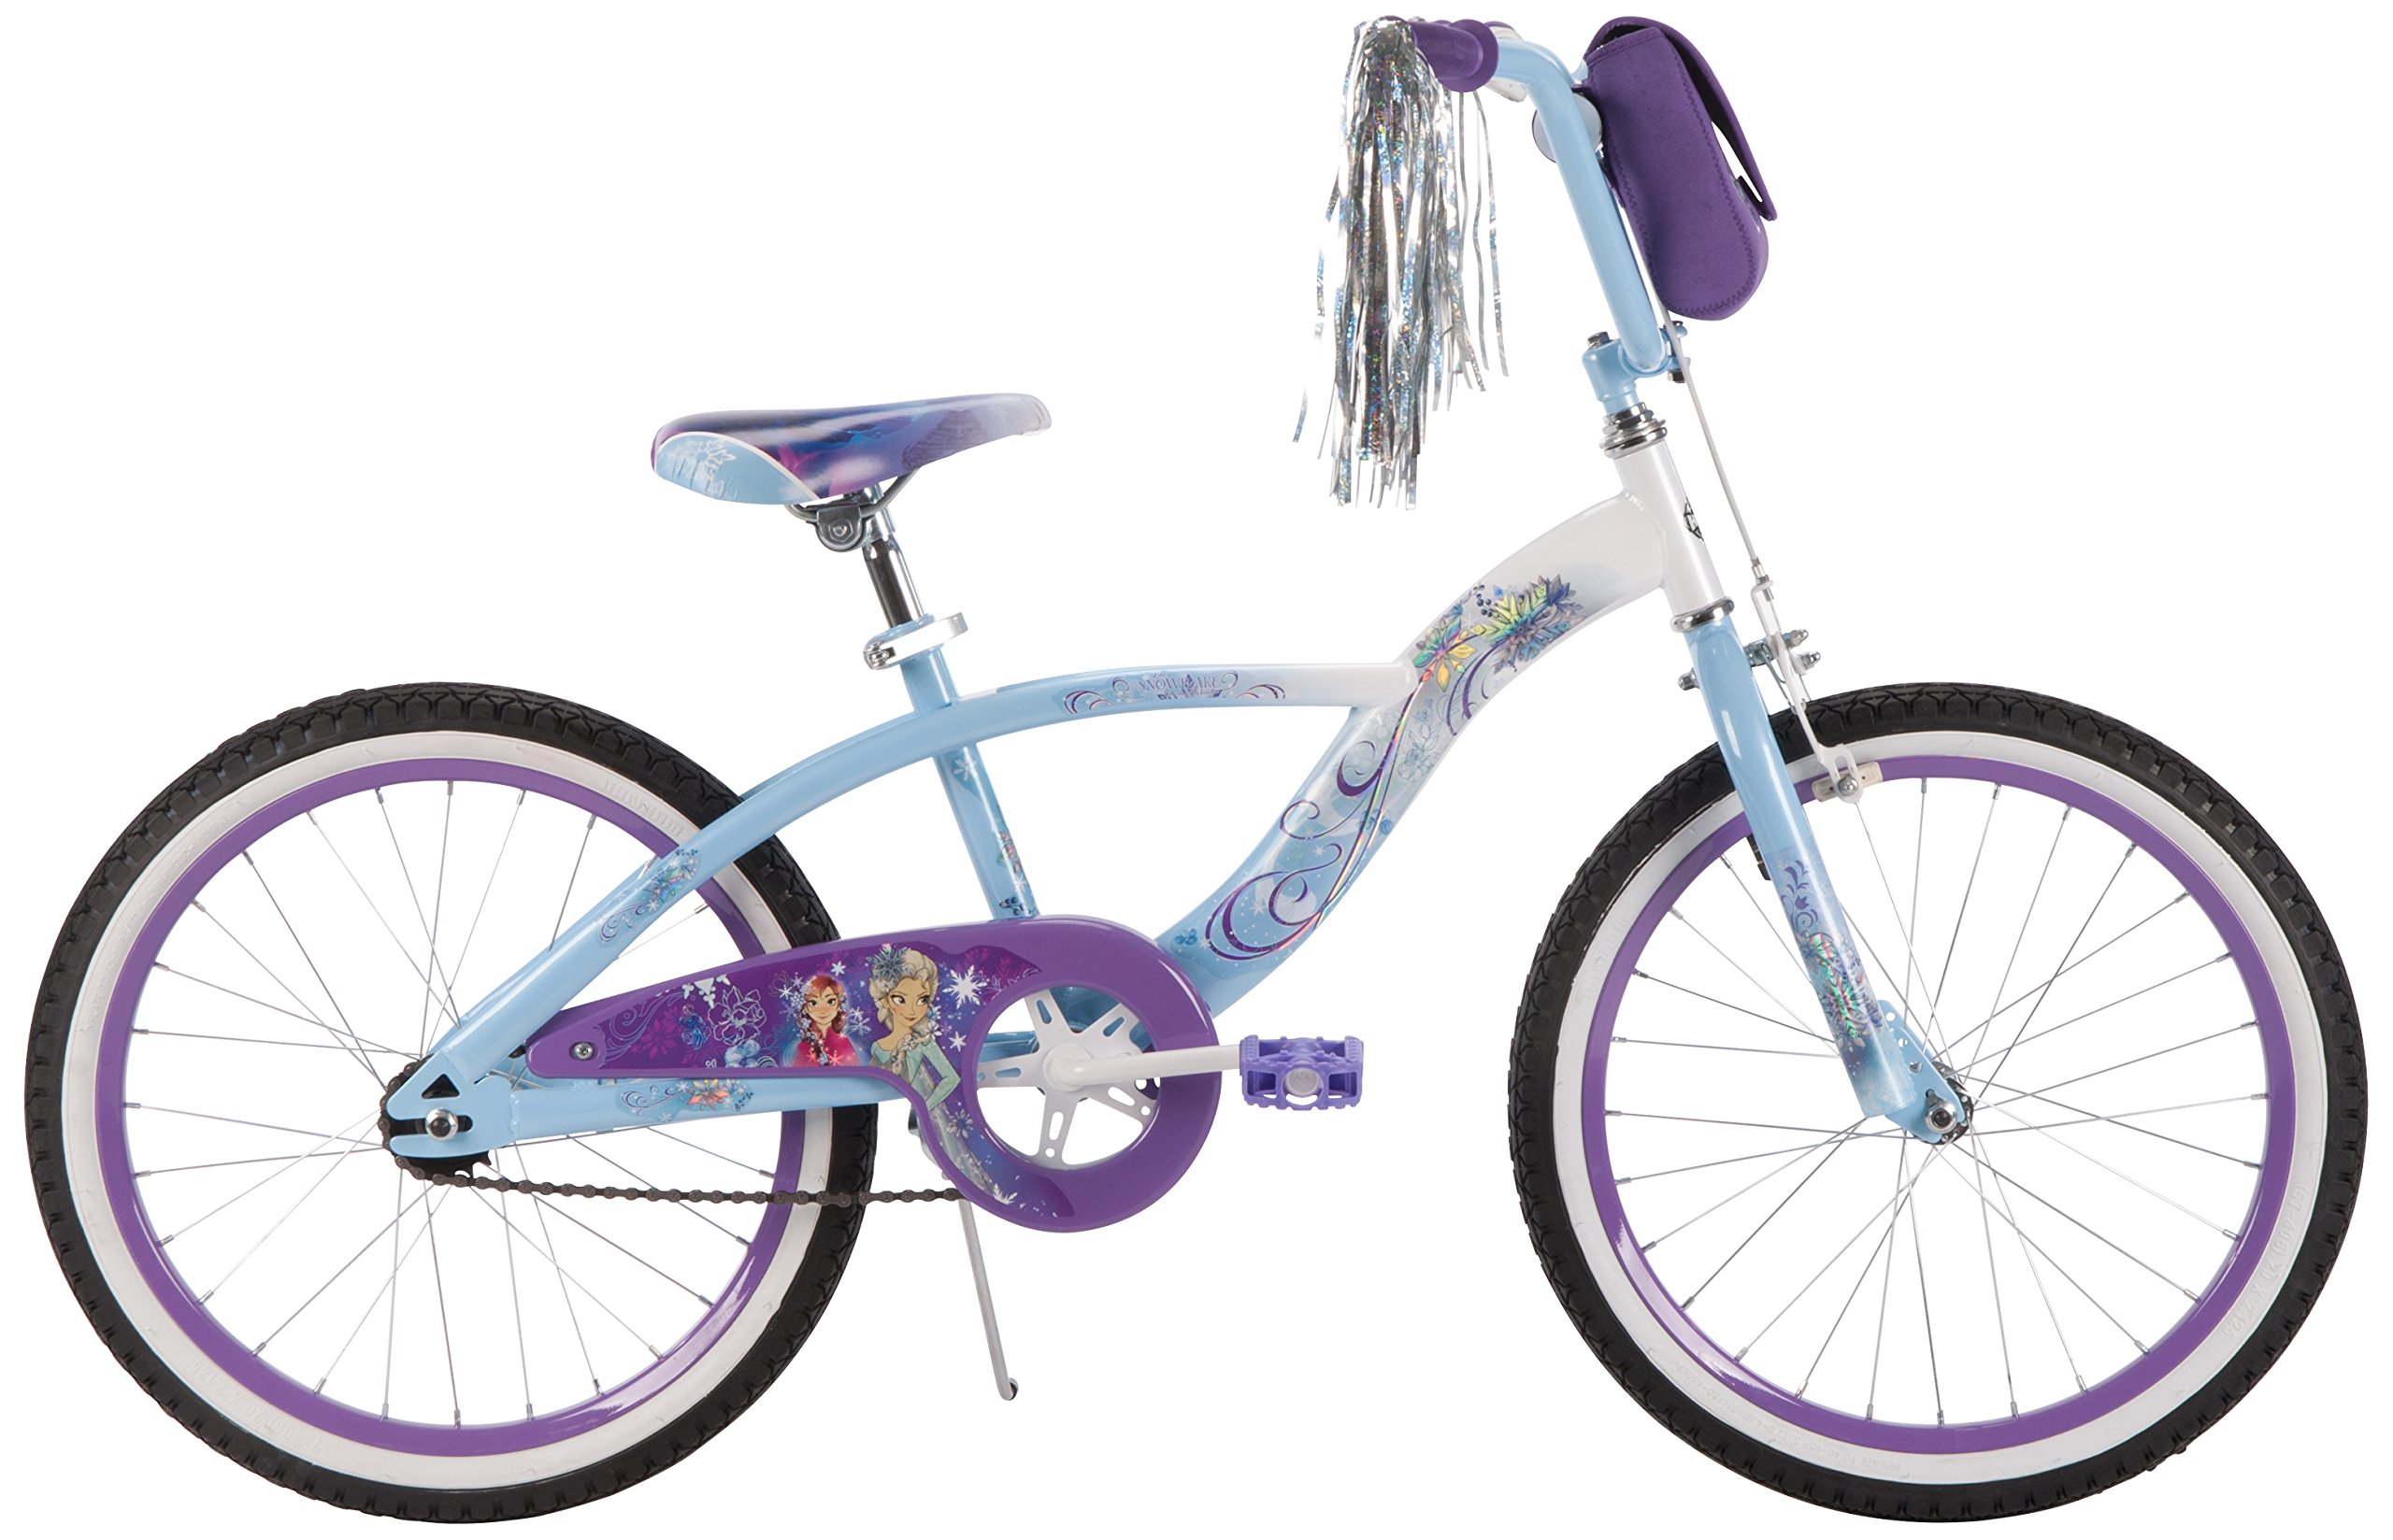 20'' Disney Frozen Girls' Bike by Huffy, Ages 5-9, Height 44-56''